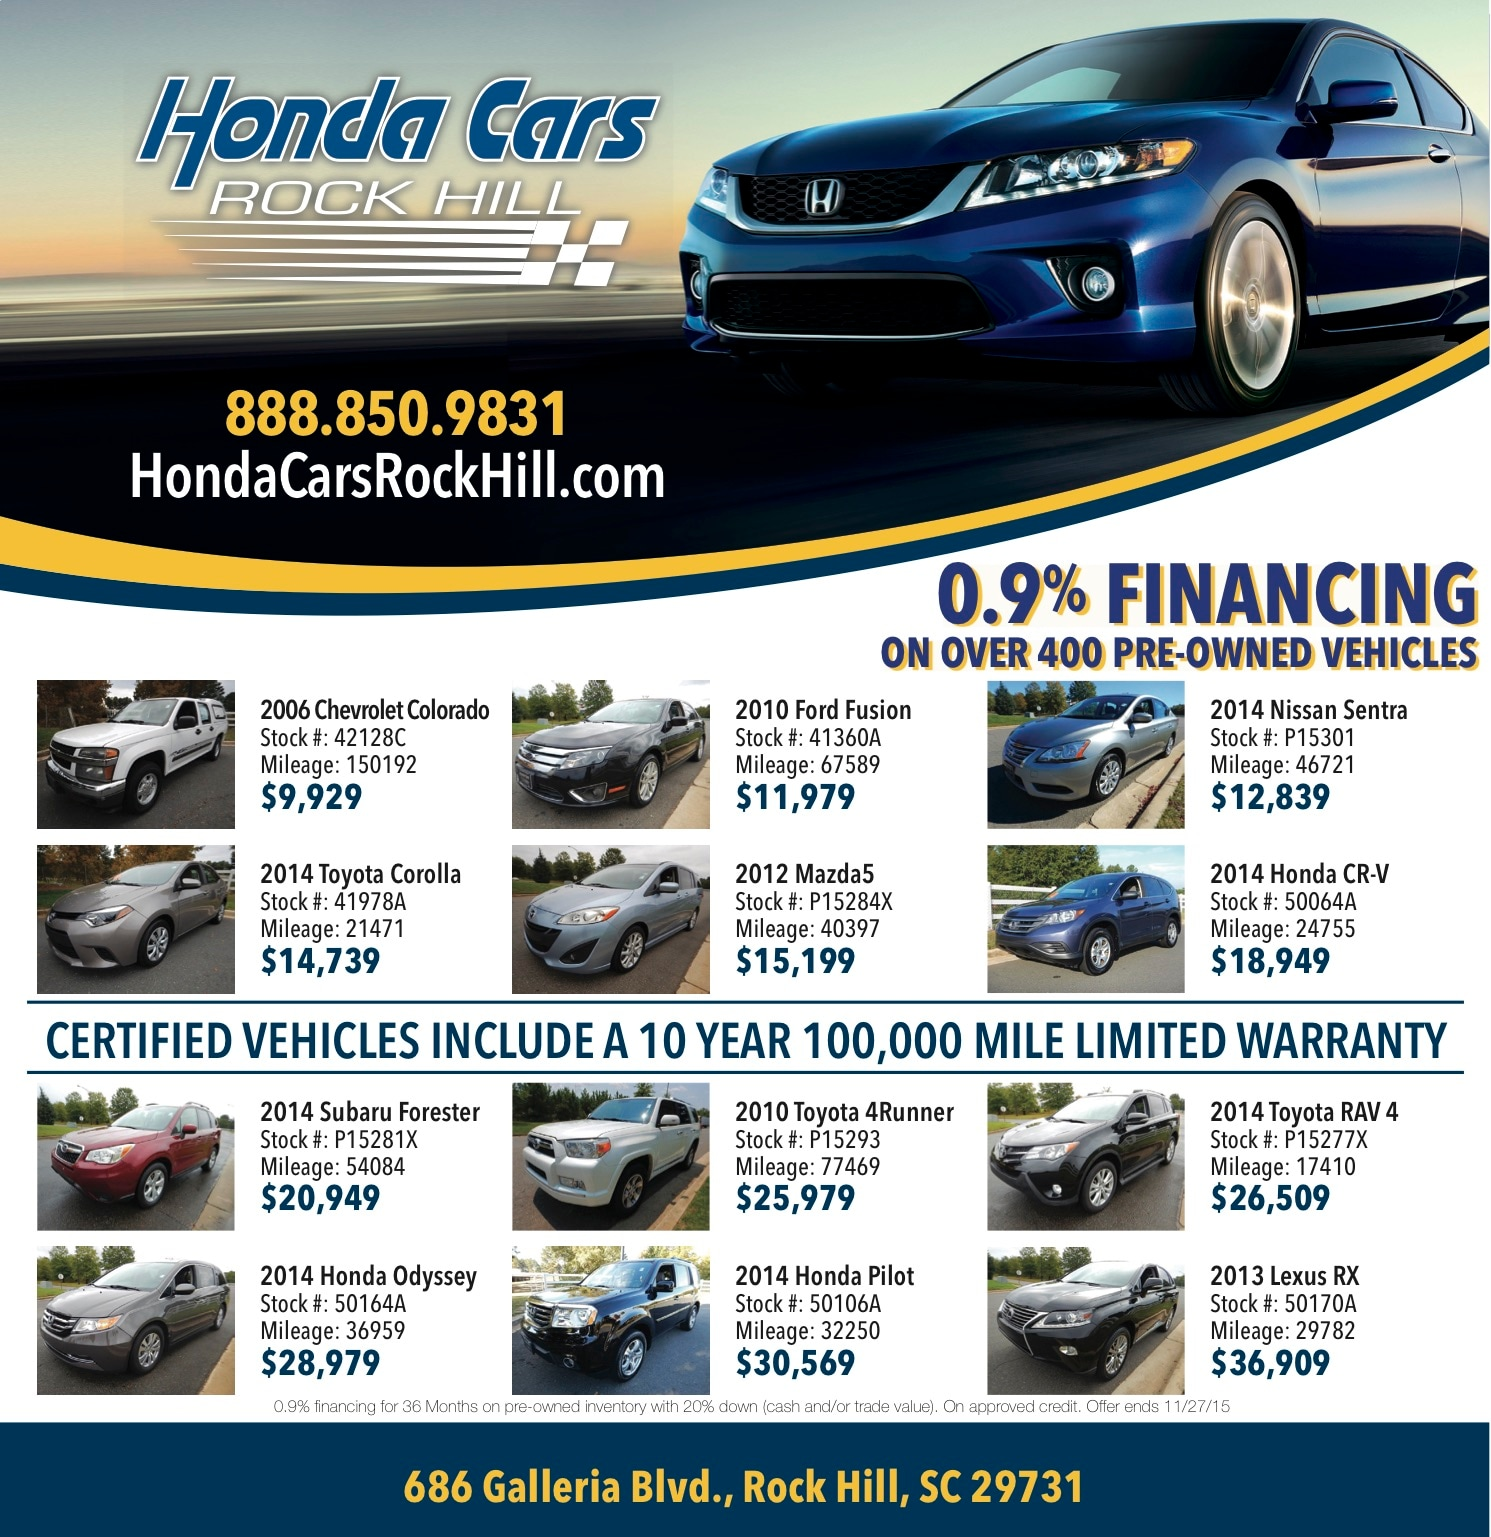 Honda Cars of Rock Hill Featured Deals